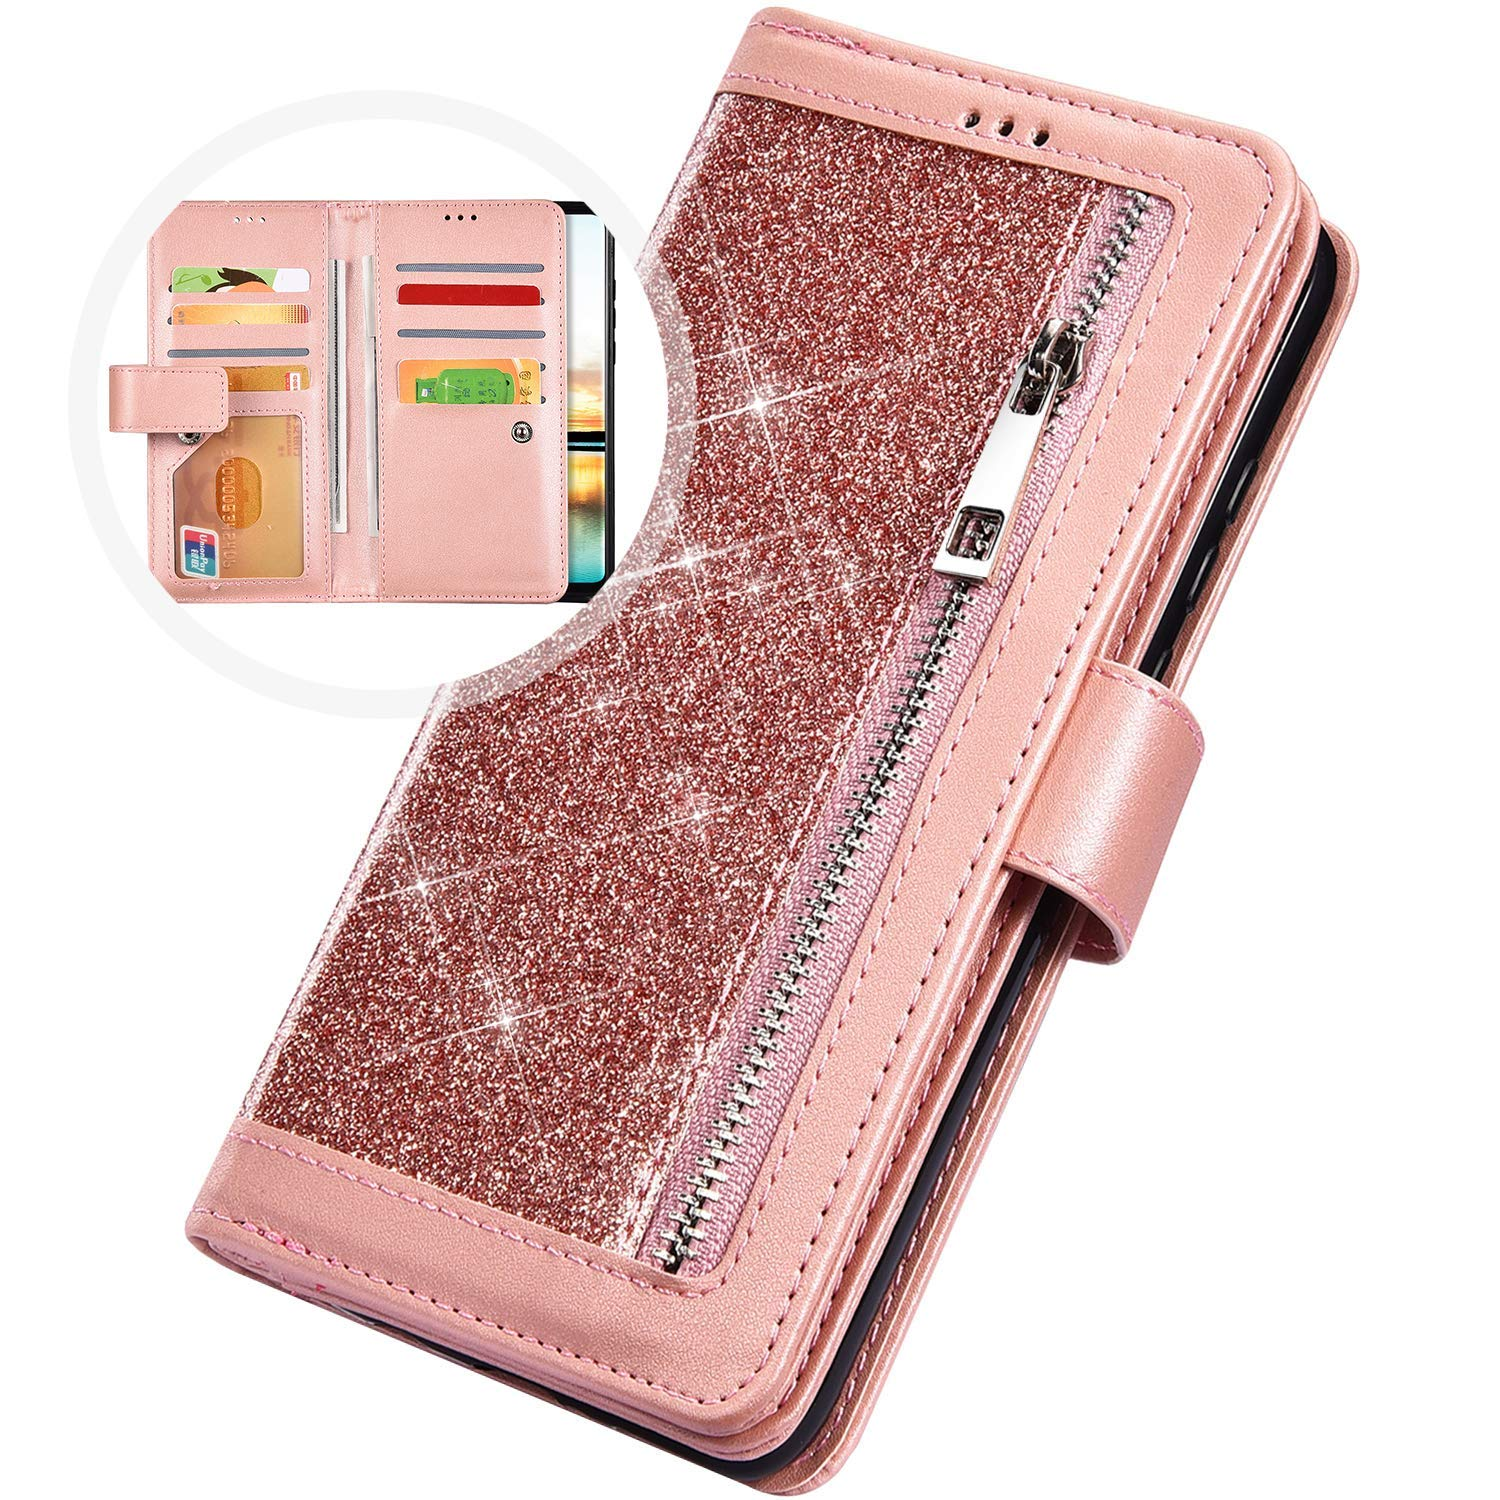 PHEZEN Case for Samsung Galaxy Note 9 Wallet Case,Sparkle Bling Glitter PU Leather Magnetic Flip Folio Protective Case Multi-Function 9 Credit Card Holders with Zipper Coins Purse Cover,Rose Gold by PHEZEN